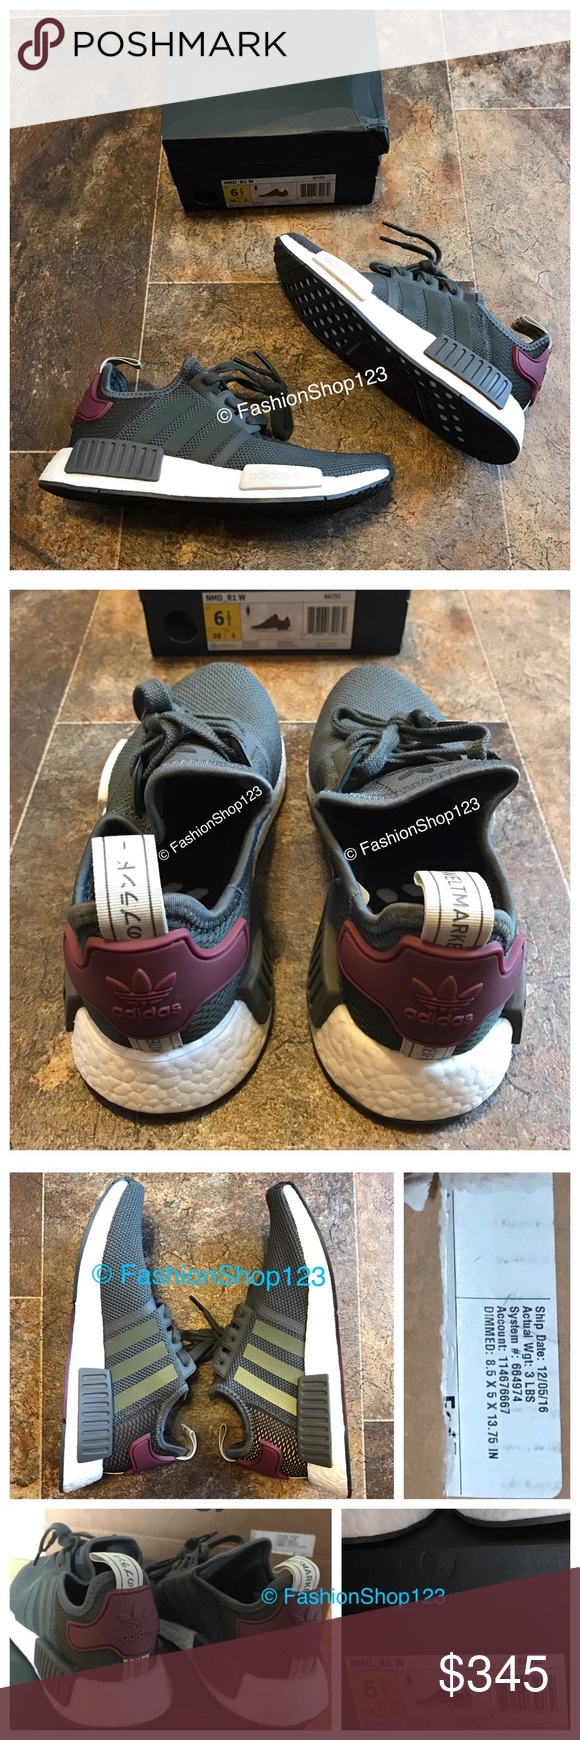 76c243d8574 ... shopping adidas nmd r1 utility grey olive maroon 6.5 womens size 6.5  limited edition d2fe1 23e90